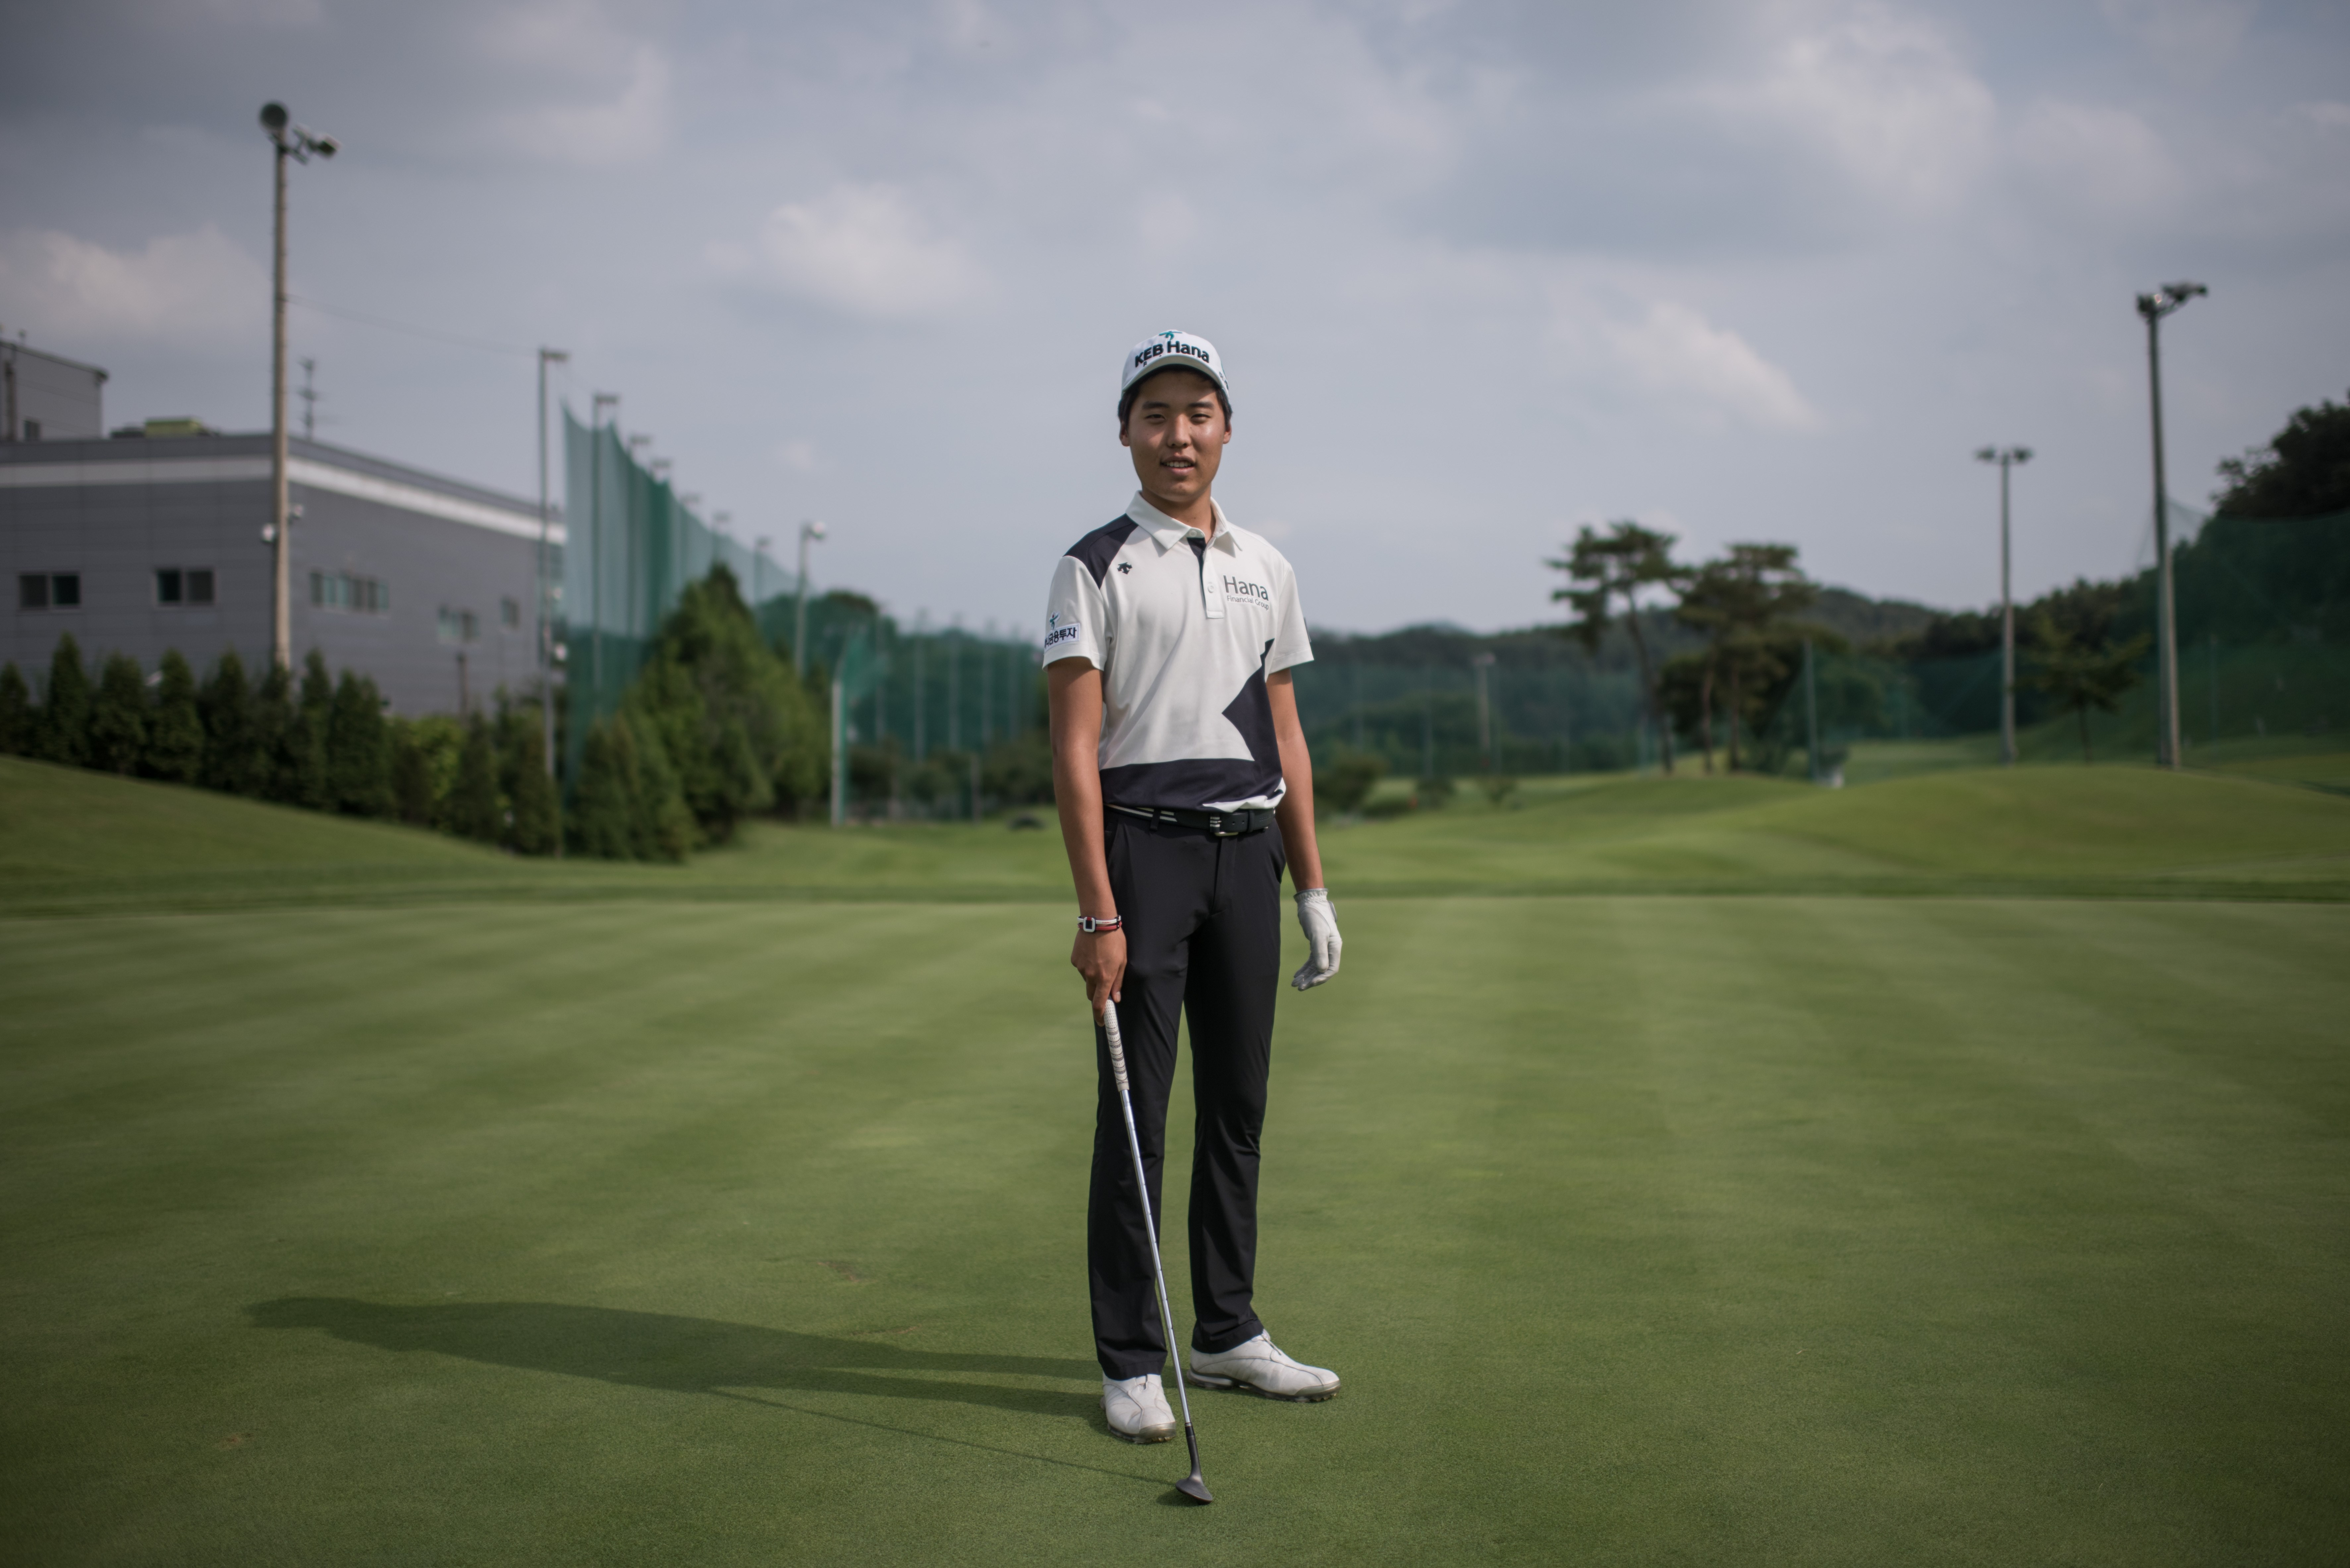 Simon Seungmin Lee poses at a club near Anseong. Six years after taking up golf, and after five failed attempts, Lee secured professional status at a Korea PGA trial in May — one of the few autistic people to do so anywhere in the world. — AFP